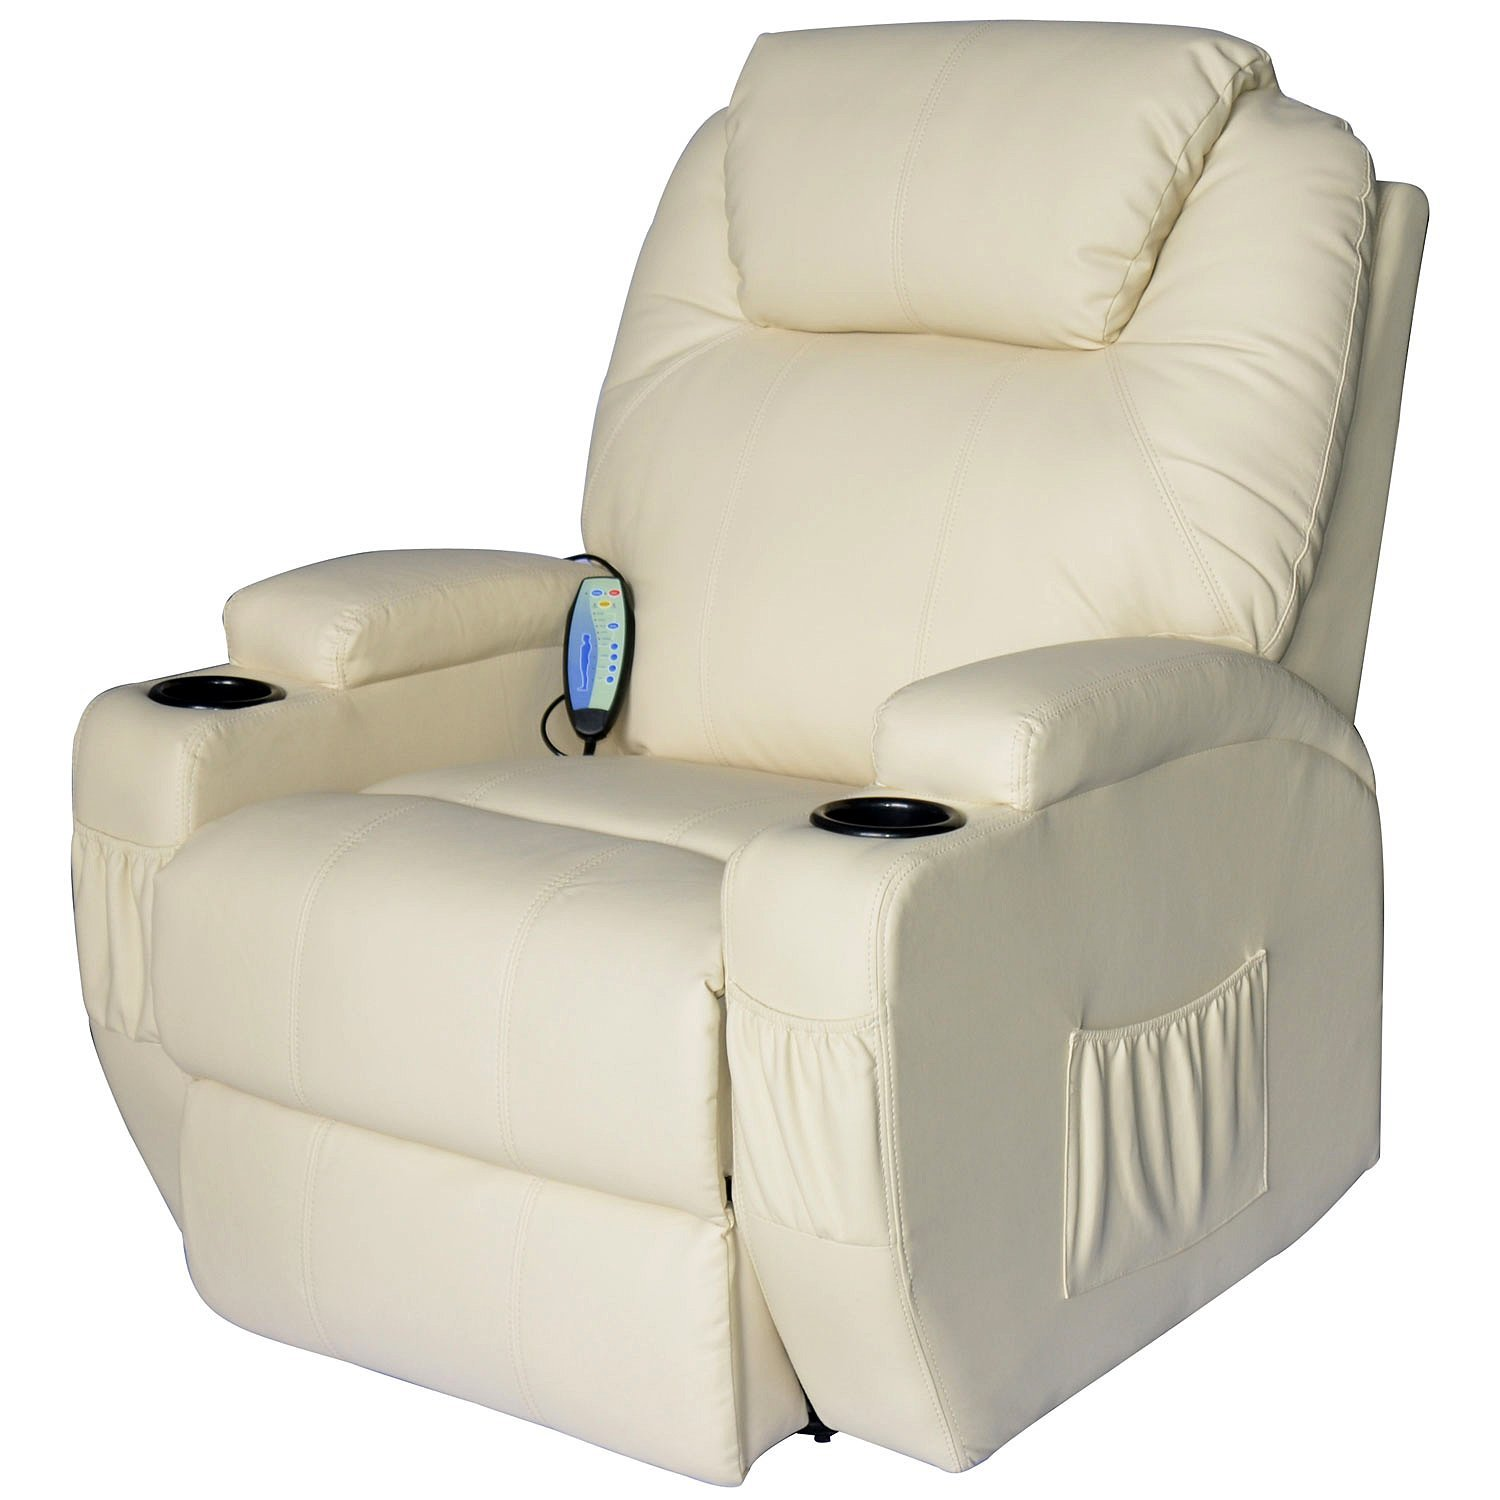 HOMCOM Relaxing Chair Recliner Massage To 8 Points With Heating 92x84x109 Cm Cream